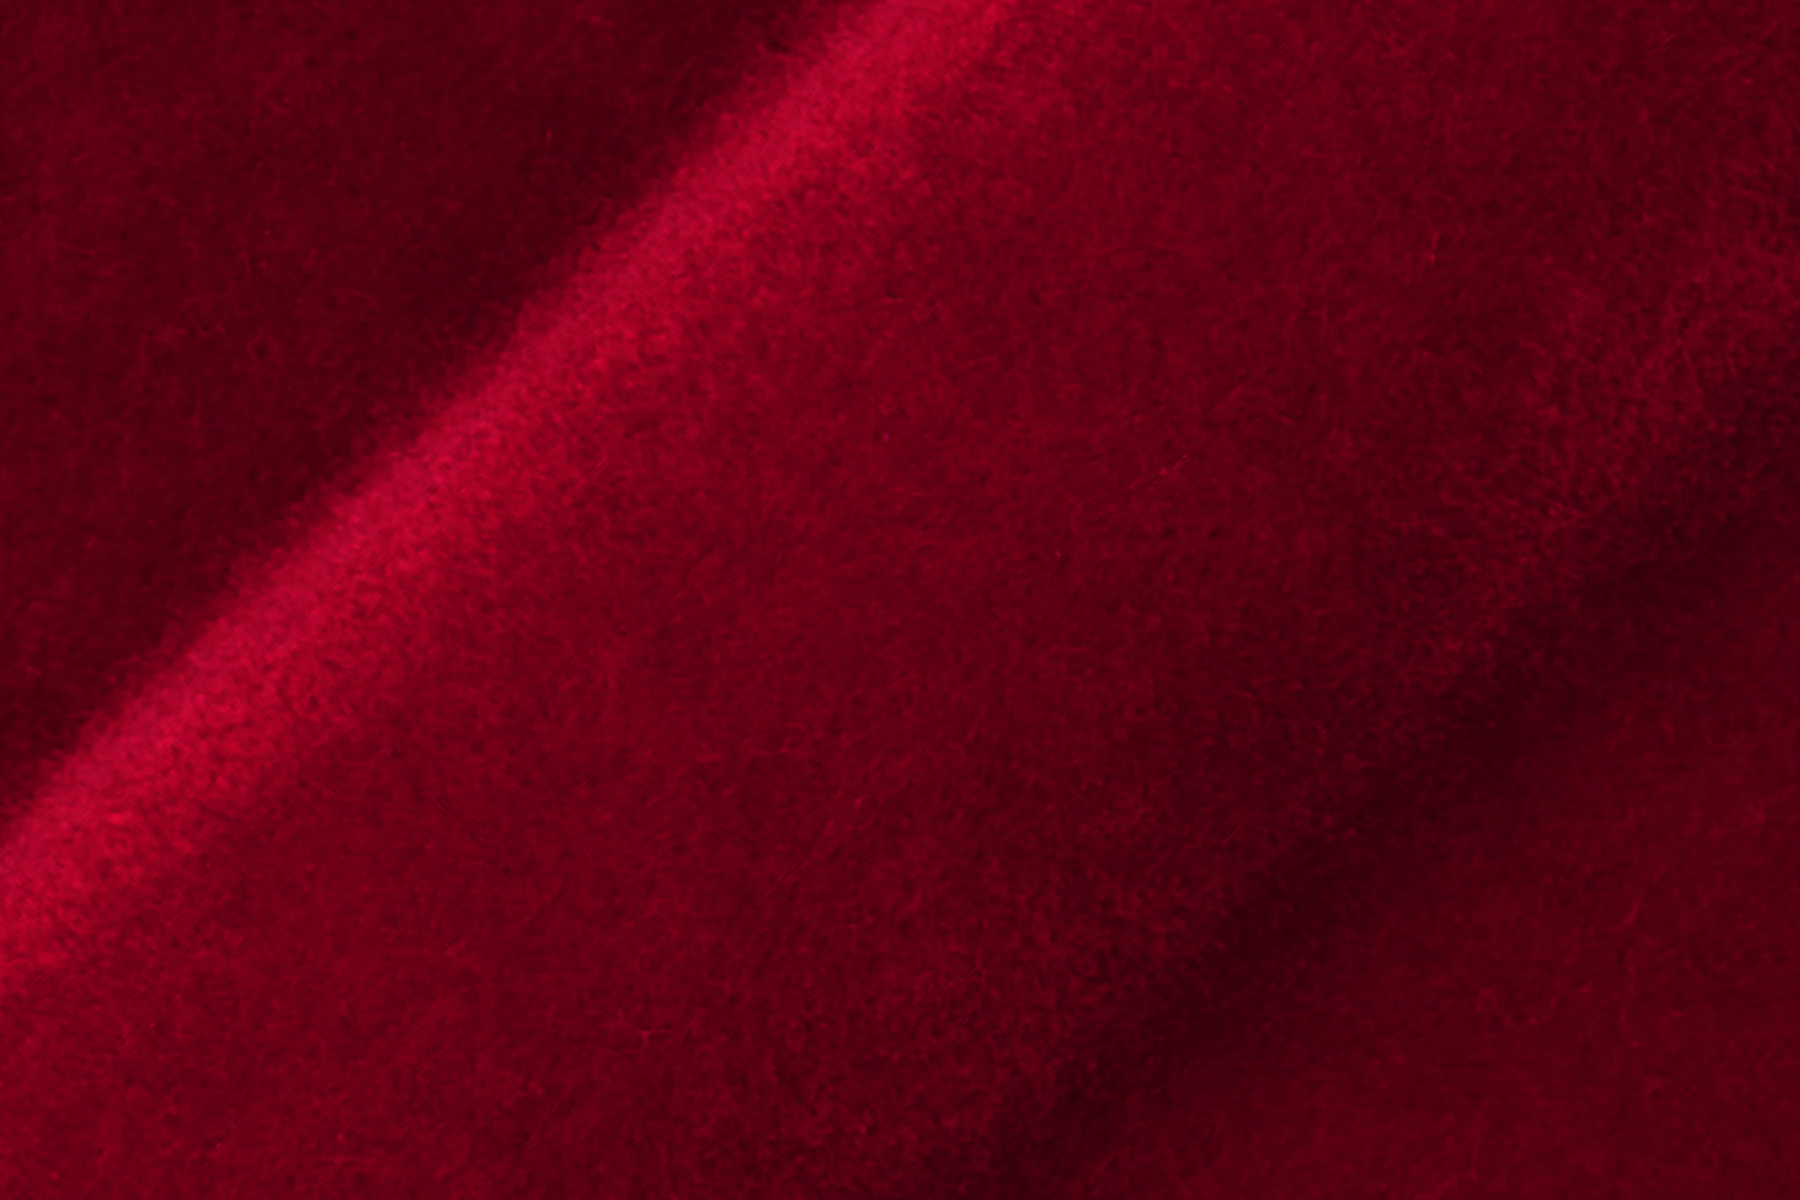 LUX VELVET 0339 RUBY WINE Fabric by KOKET